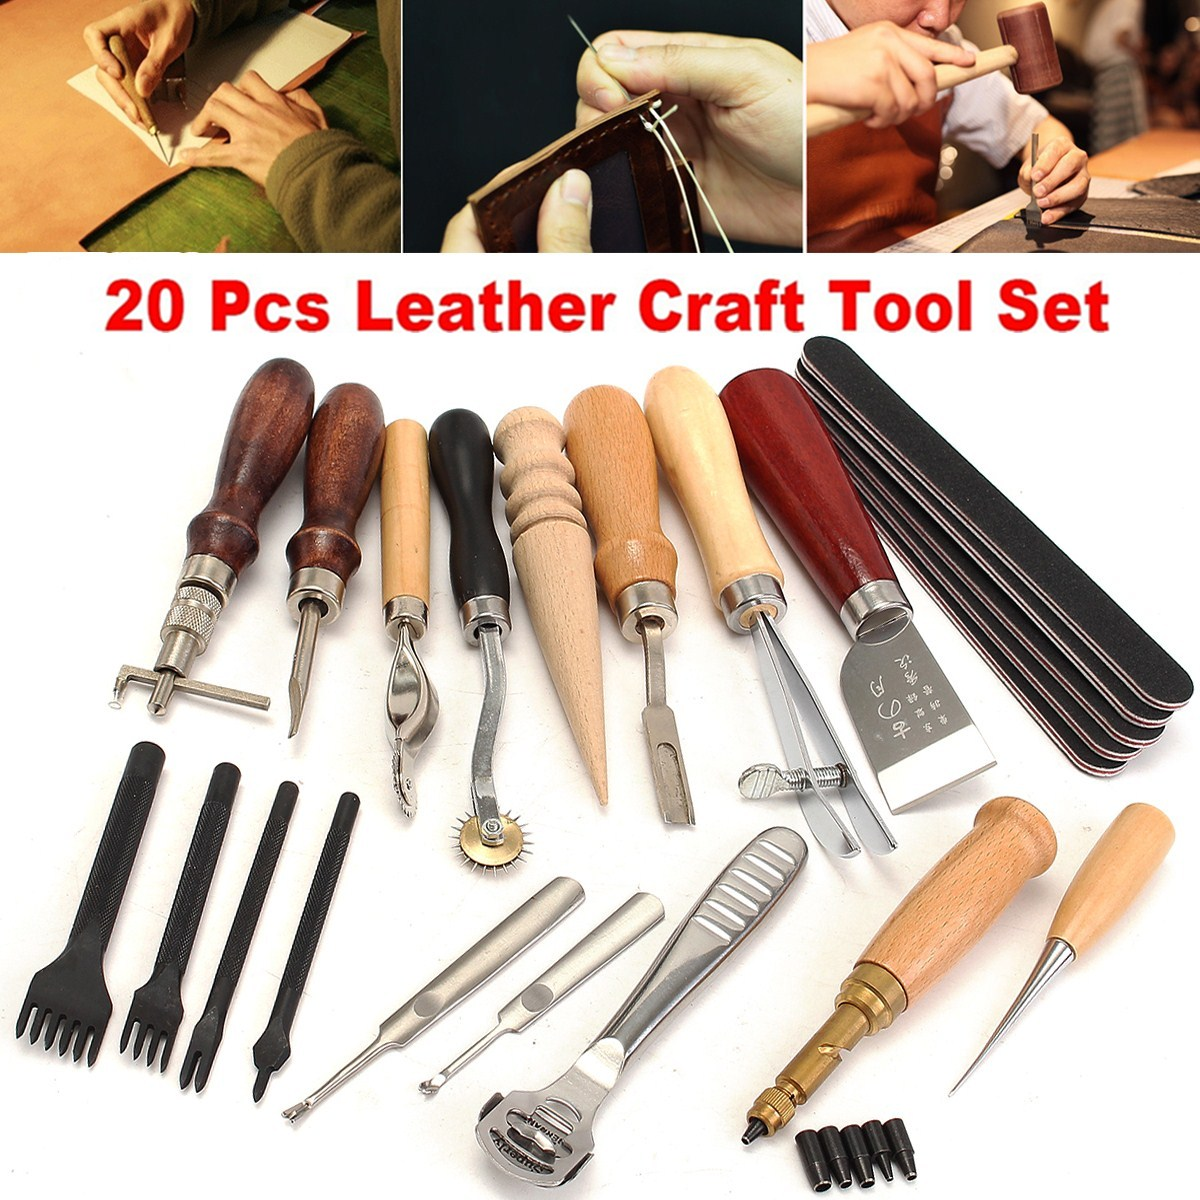 18Pcs Leather Craft Punch Tools Kit SET Stitching Carving Working Sewing Saddle Groover Leather Craft Tools Set